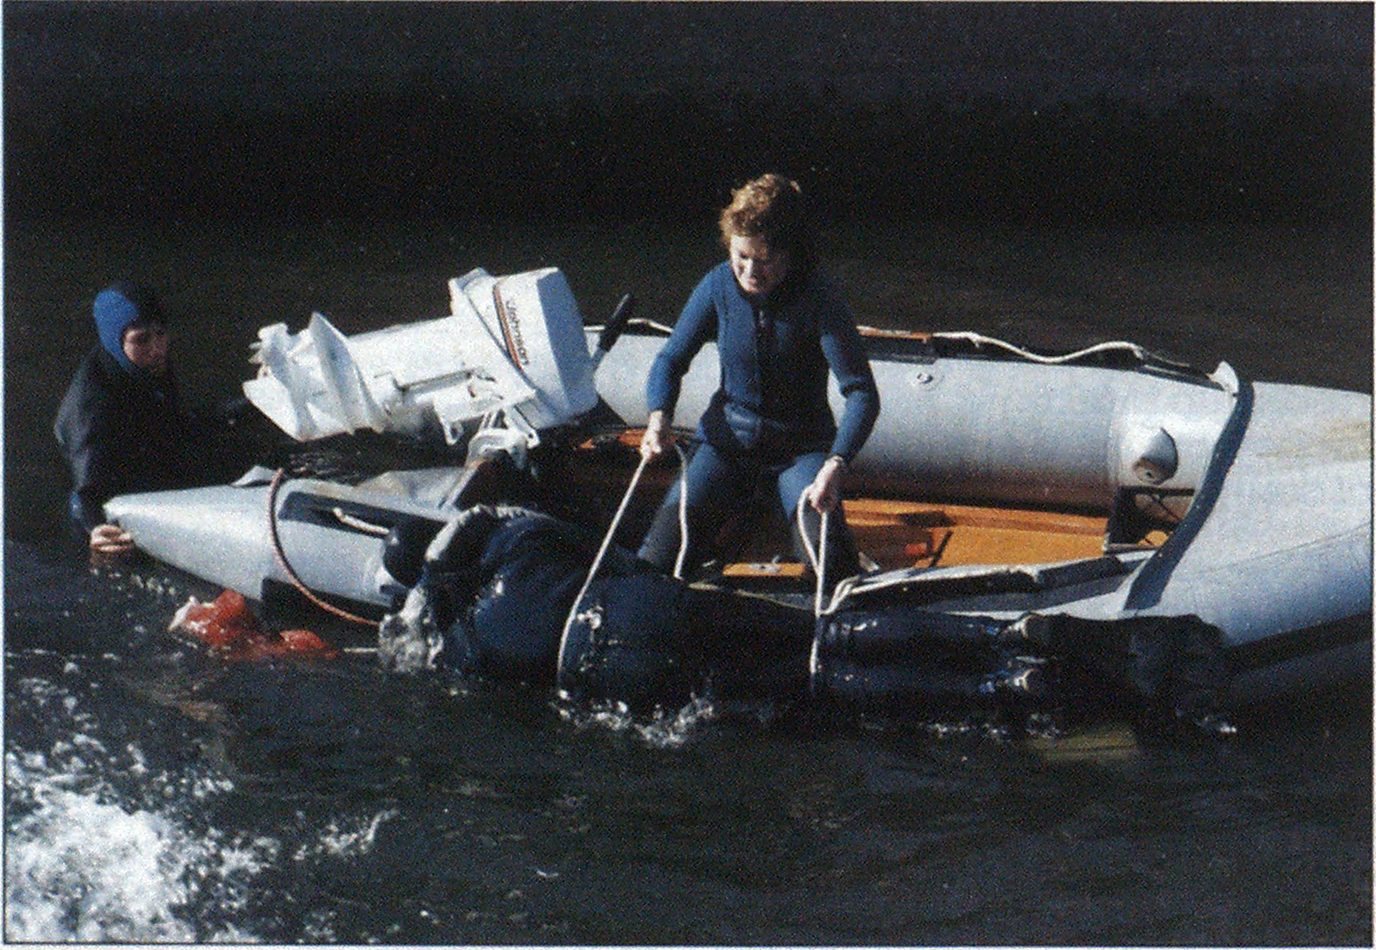 In this picture you see a 26-year-old. 98-pound woman bringing a 209-pound man into a 12-foot inflatable boat by herself.